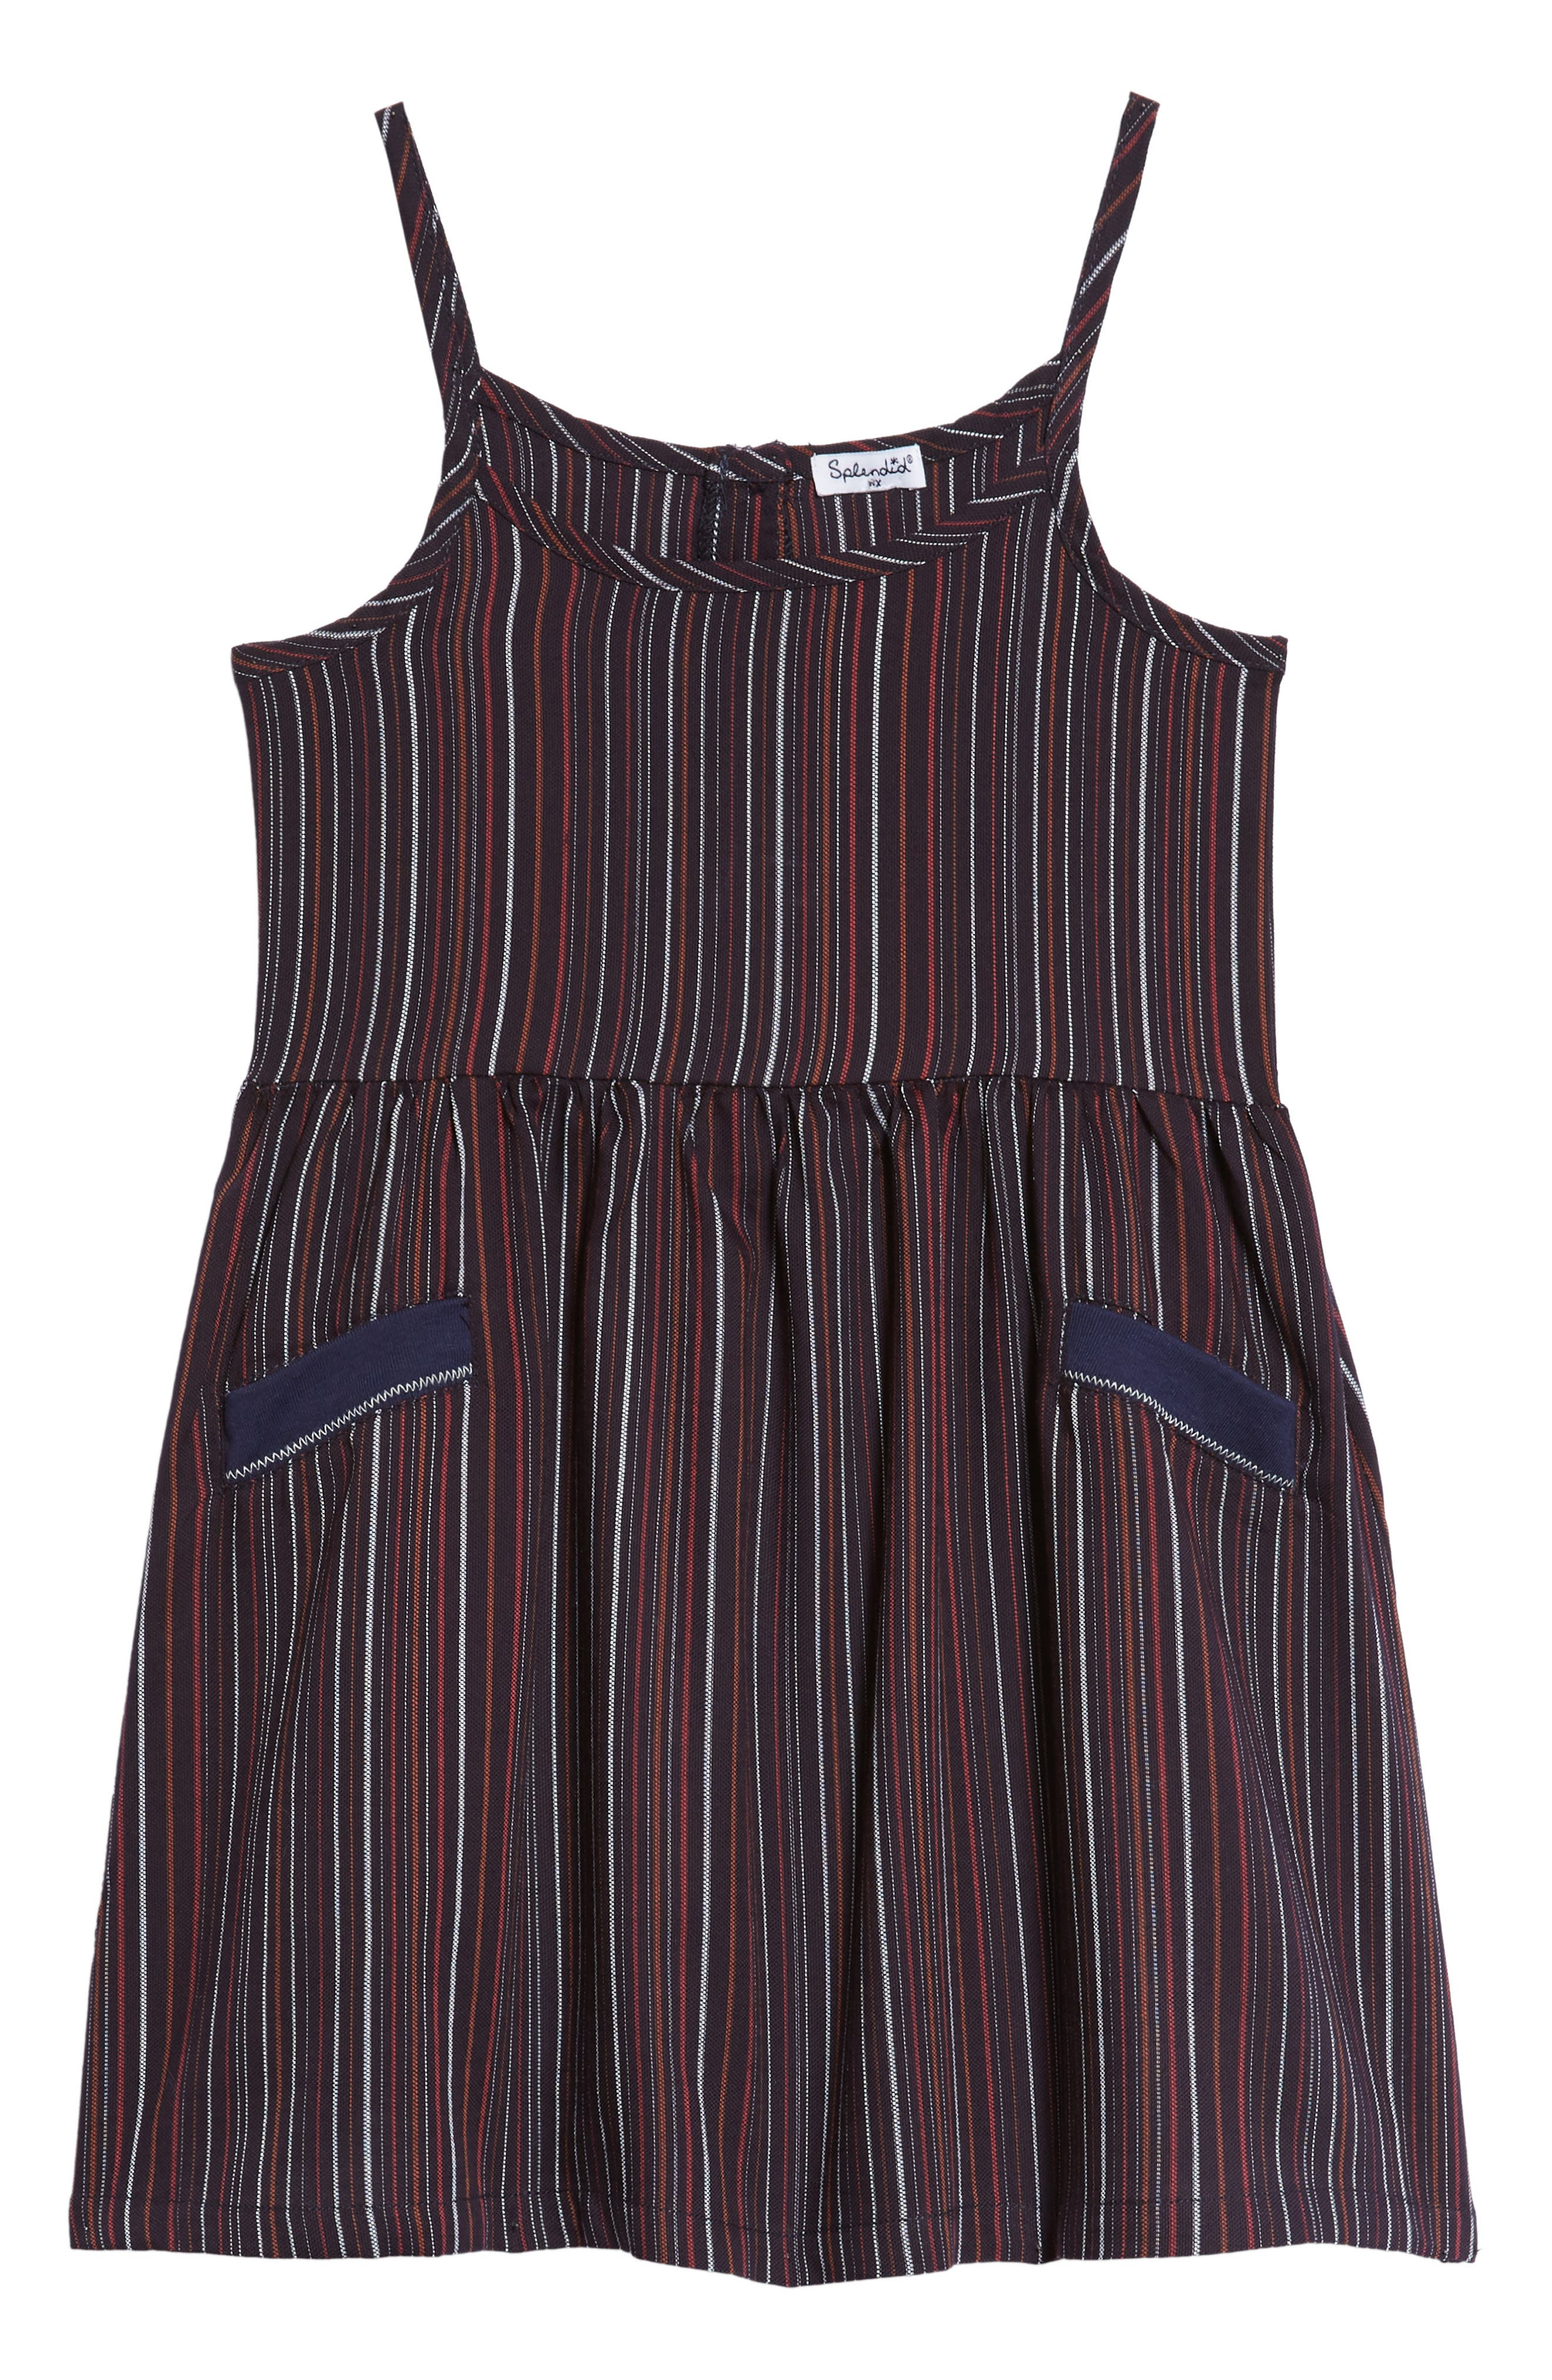 Main Image - Splendid Stripe Tank Dress (Toddler Girls & Little Girls)